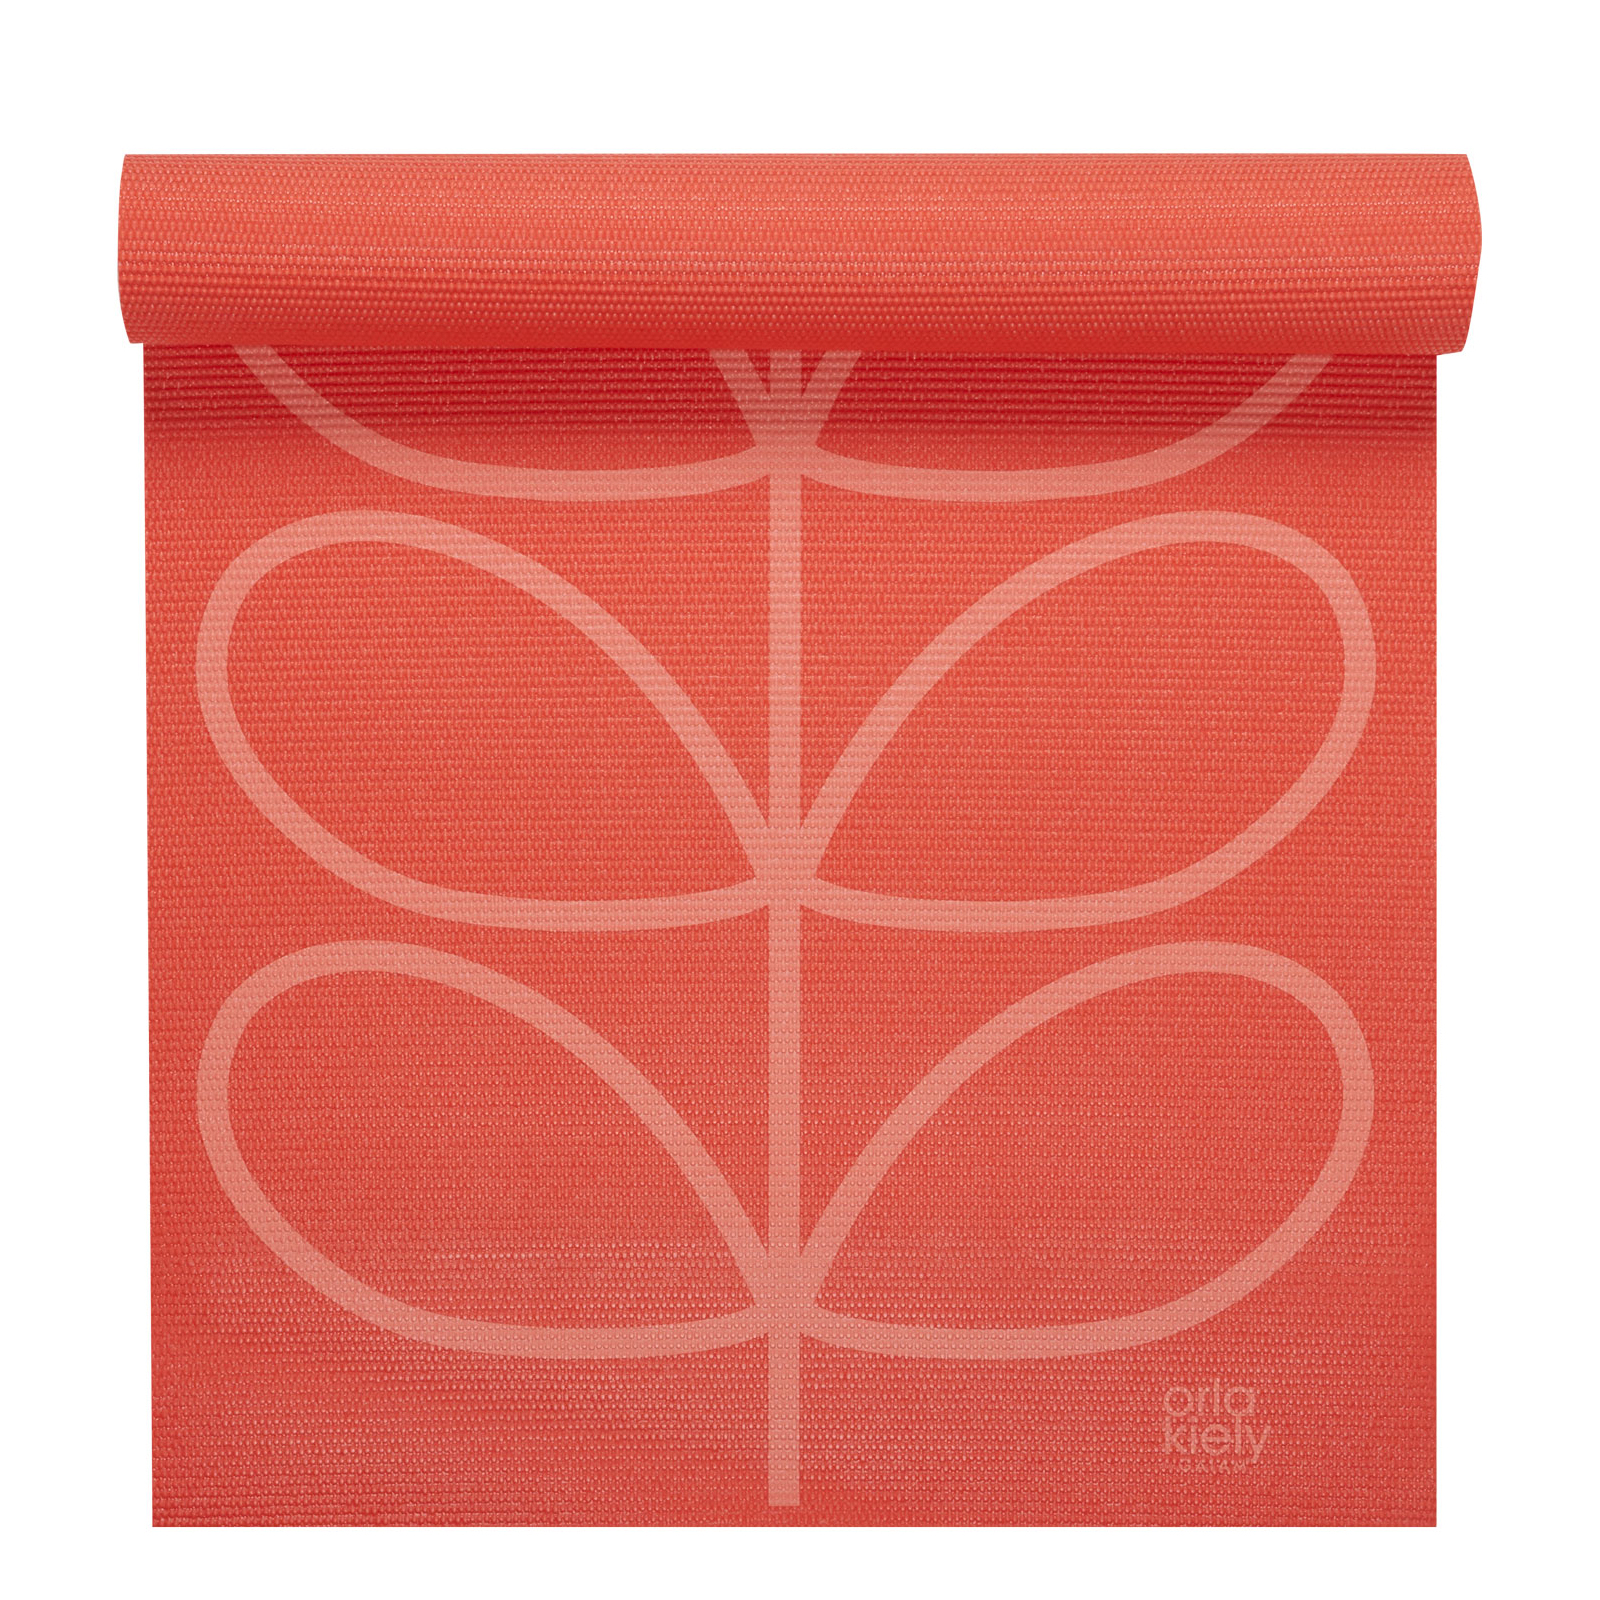 Orla Kiely Yoga Mats Now Available In The Uk